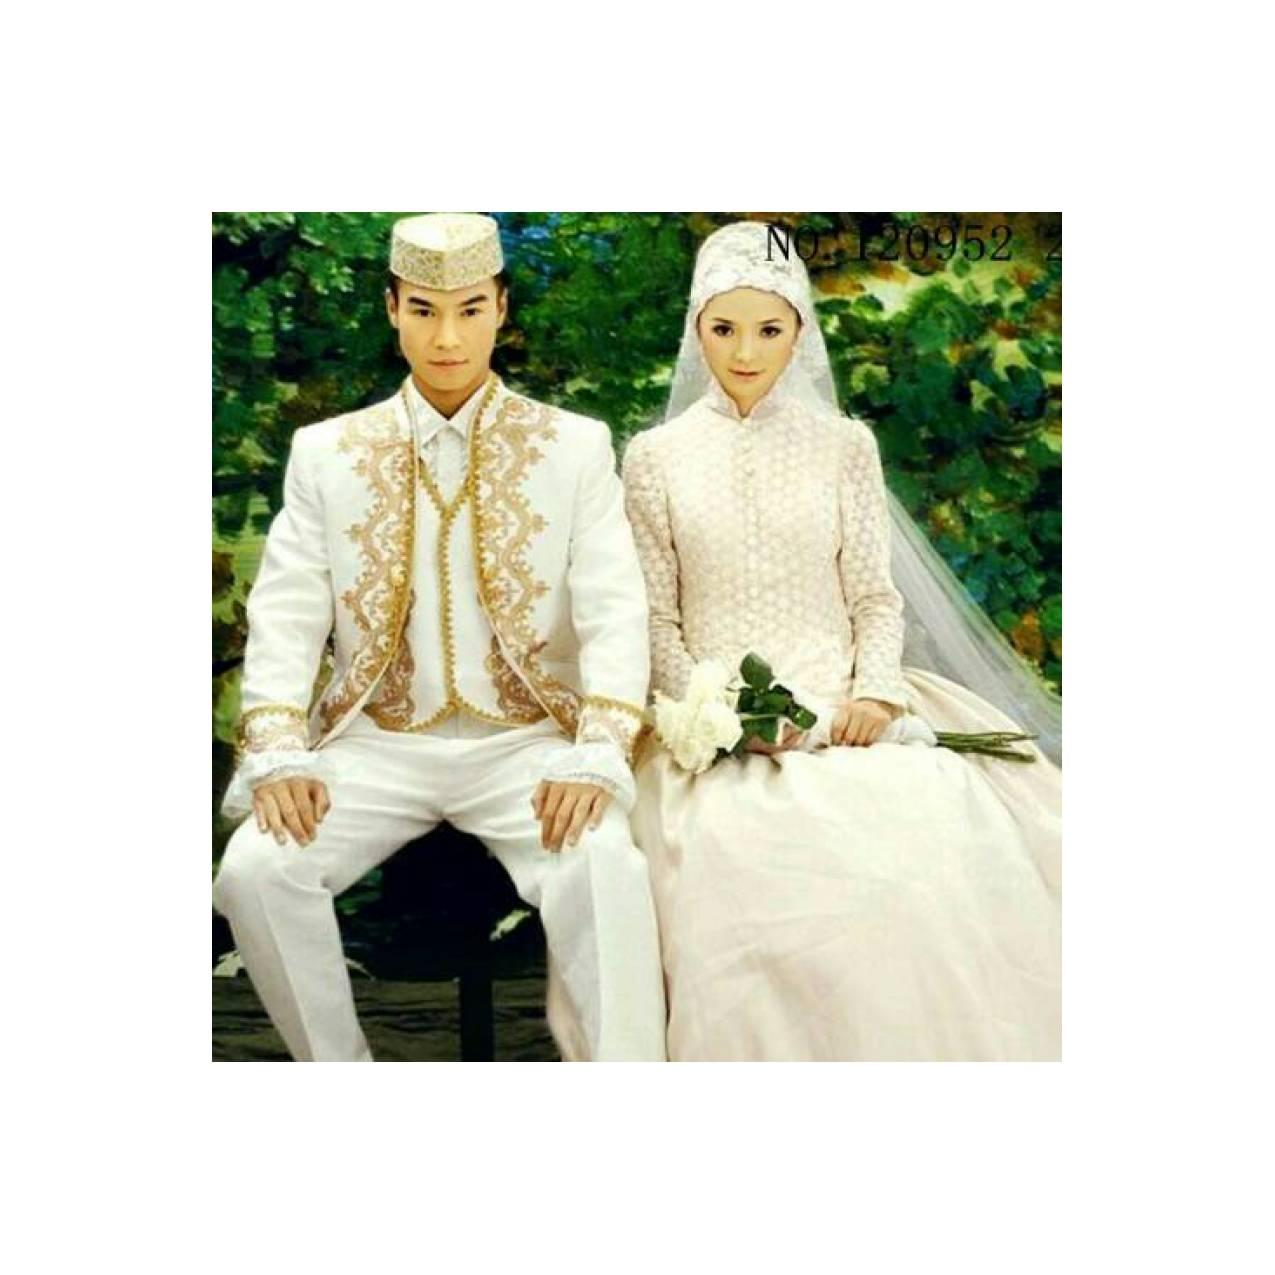 Gaun Pengantin Baju Pengantin Muslim Couple Wedding Dress CB-GT 120952